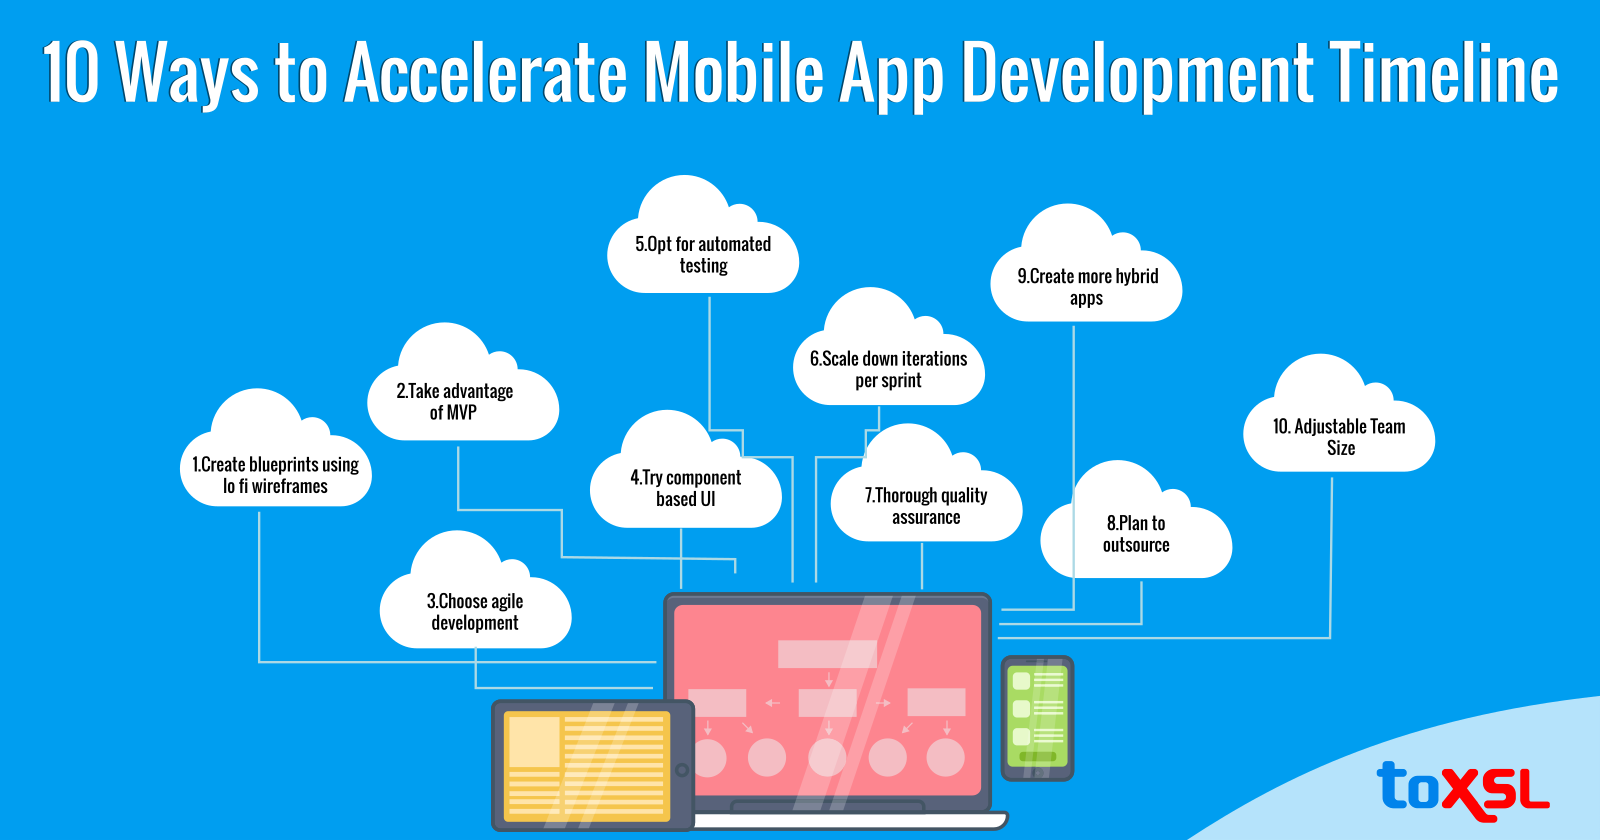 10 Ways to Accelerate Mobile App Development Timeline